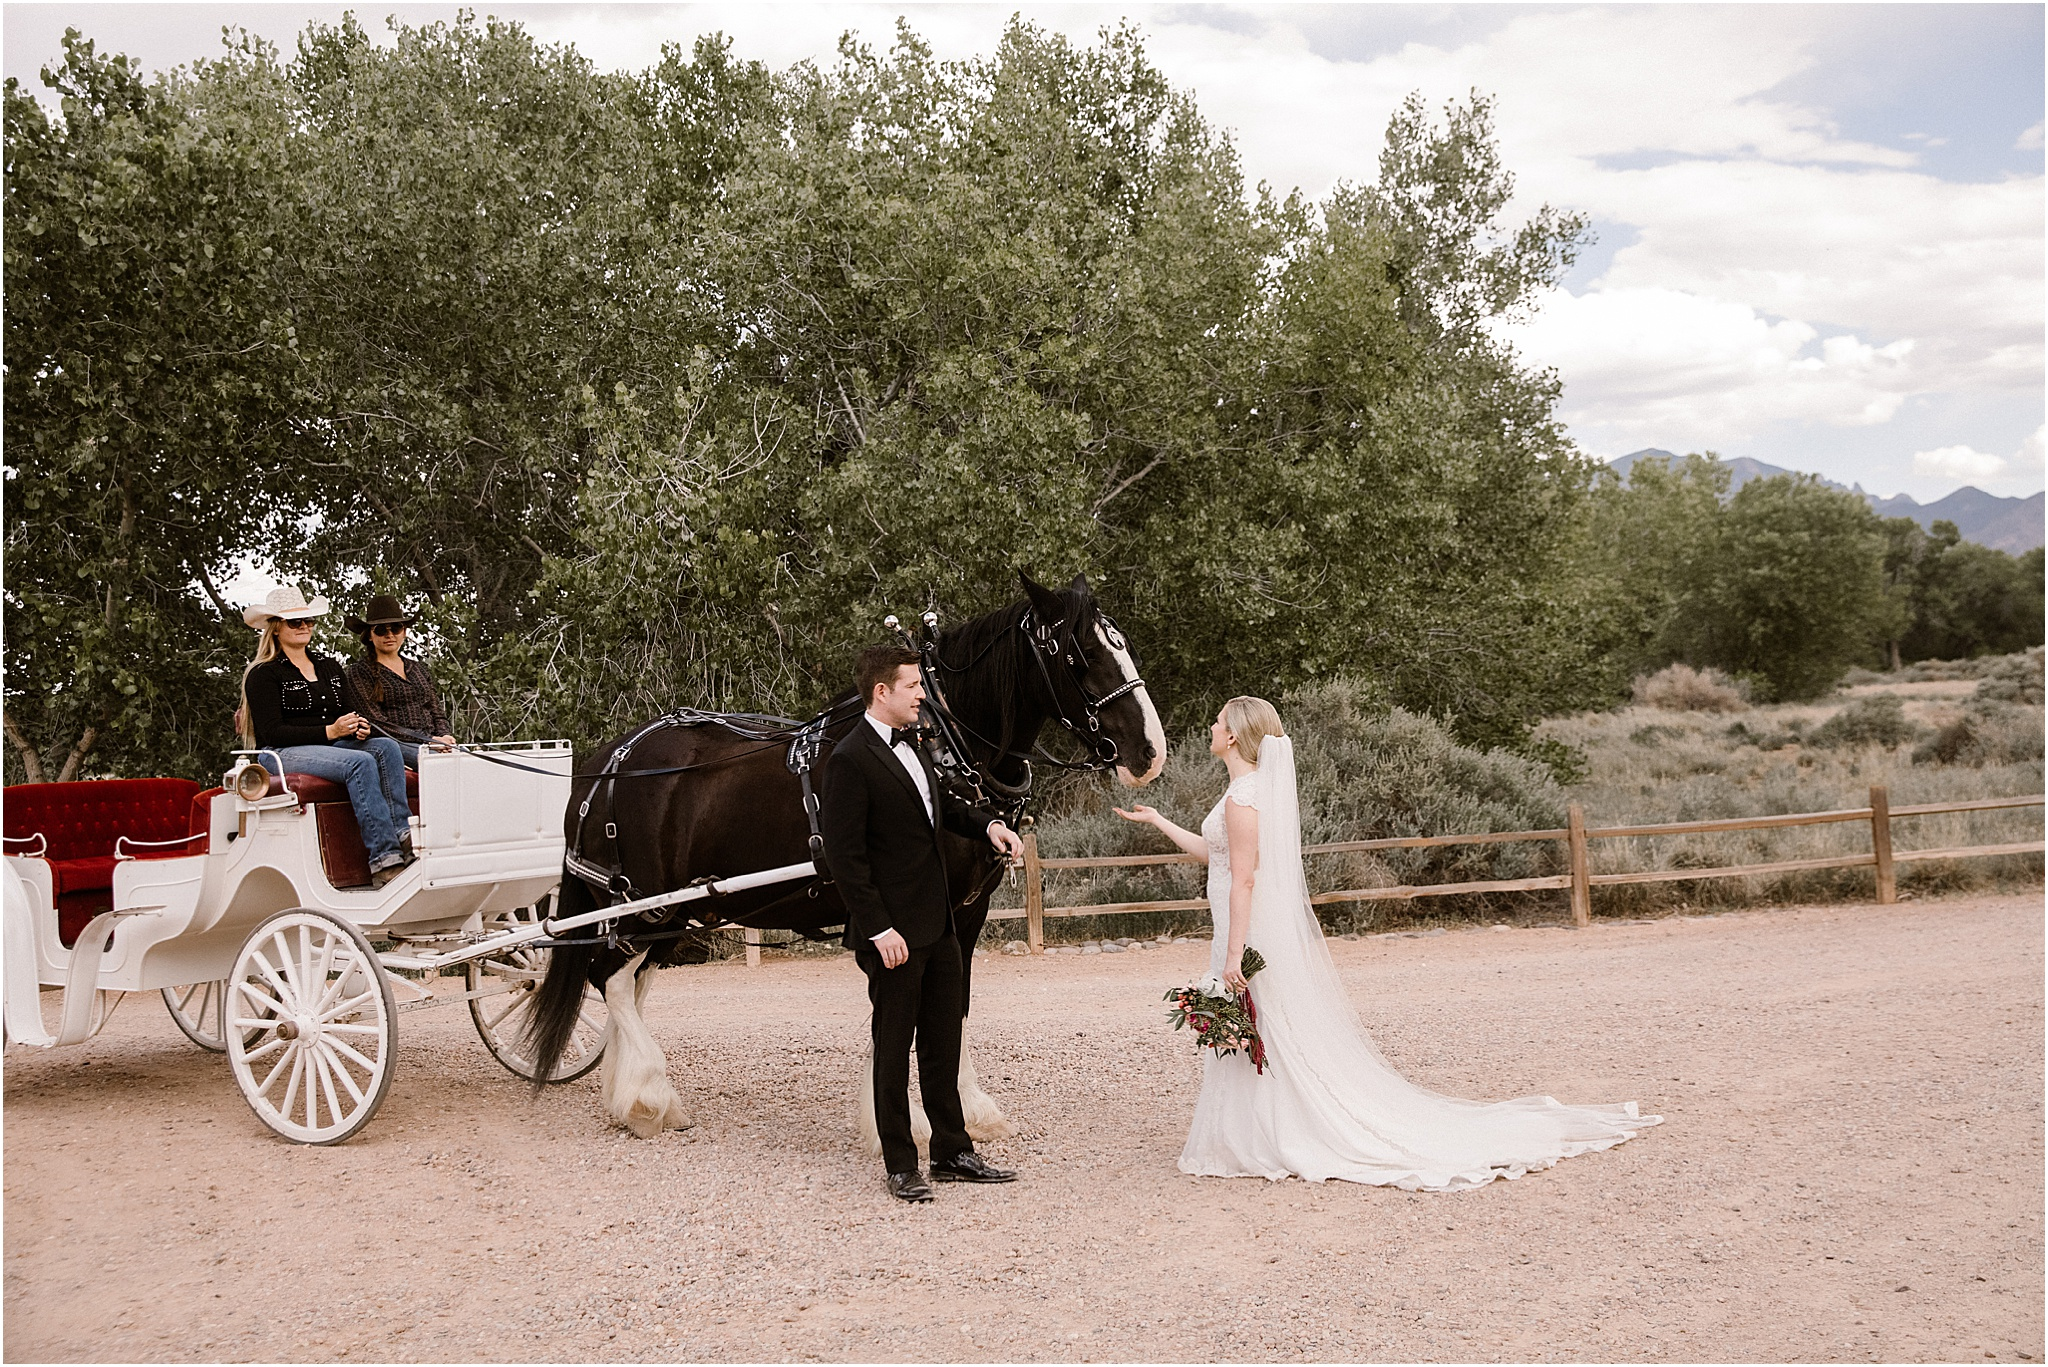 JENNA_JEROME_BLUE ROSE PHOTOGRAPHY_ABQ WEDDING_38